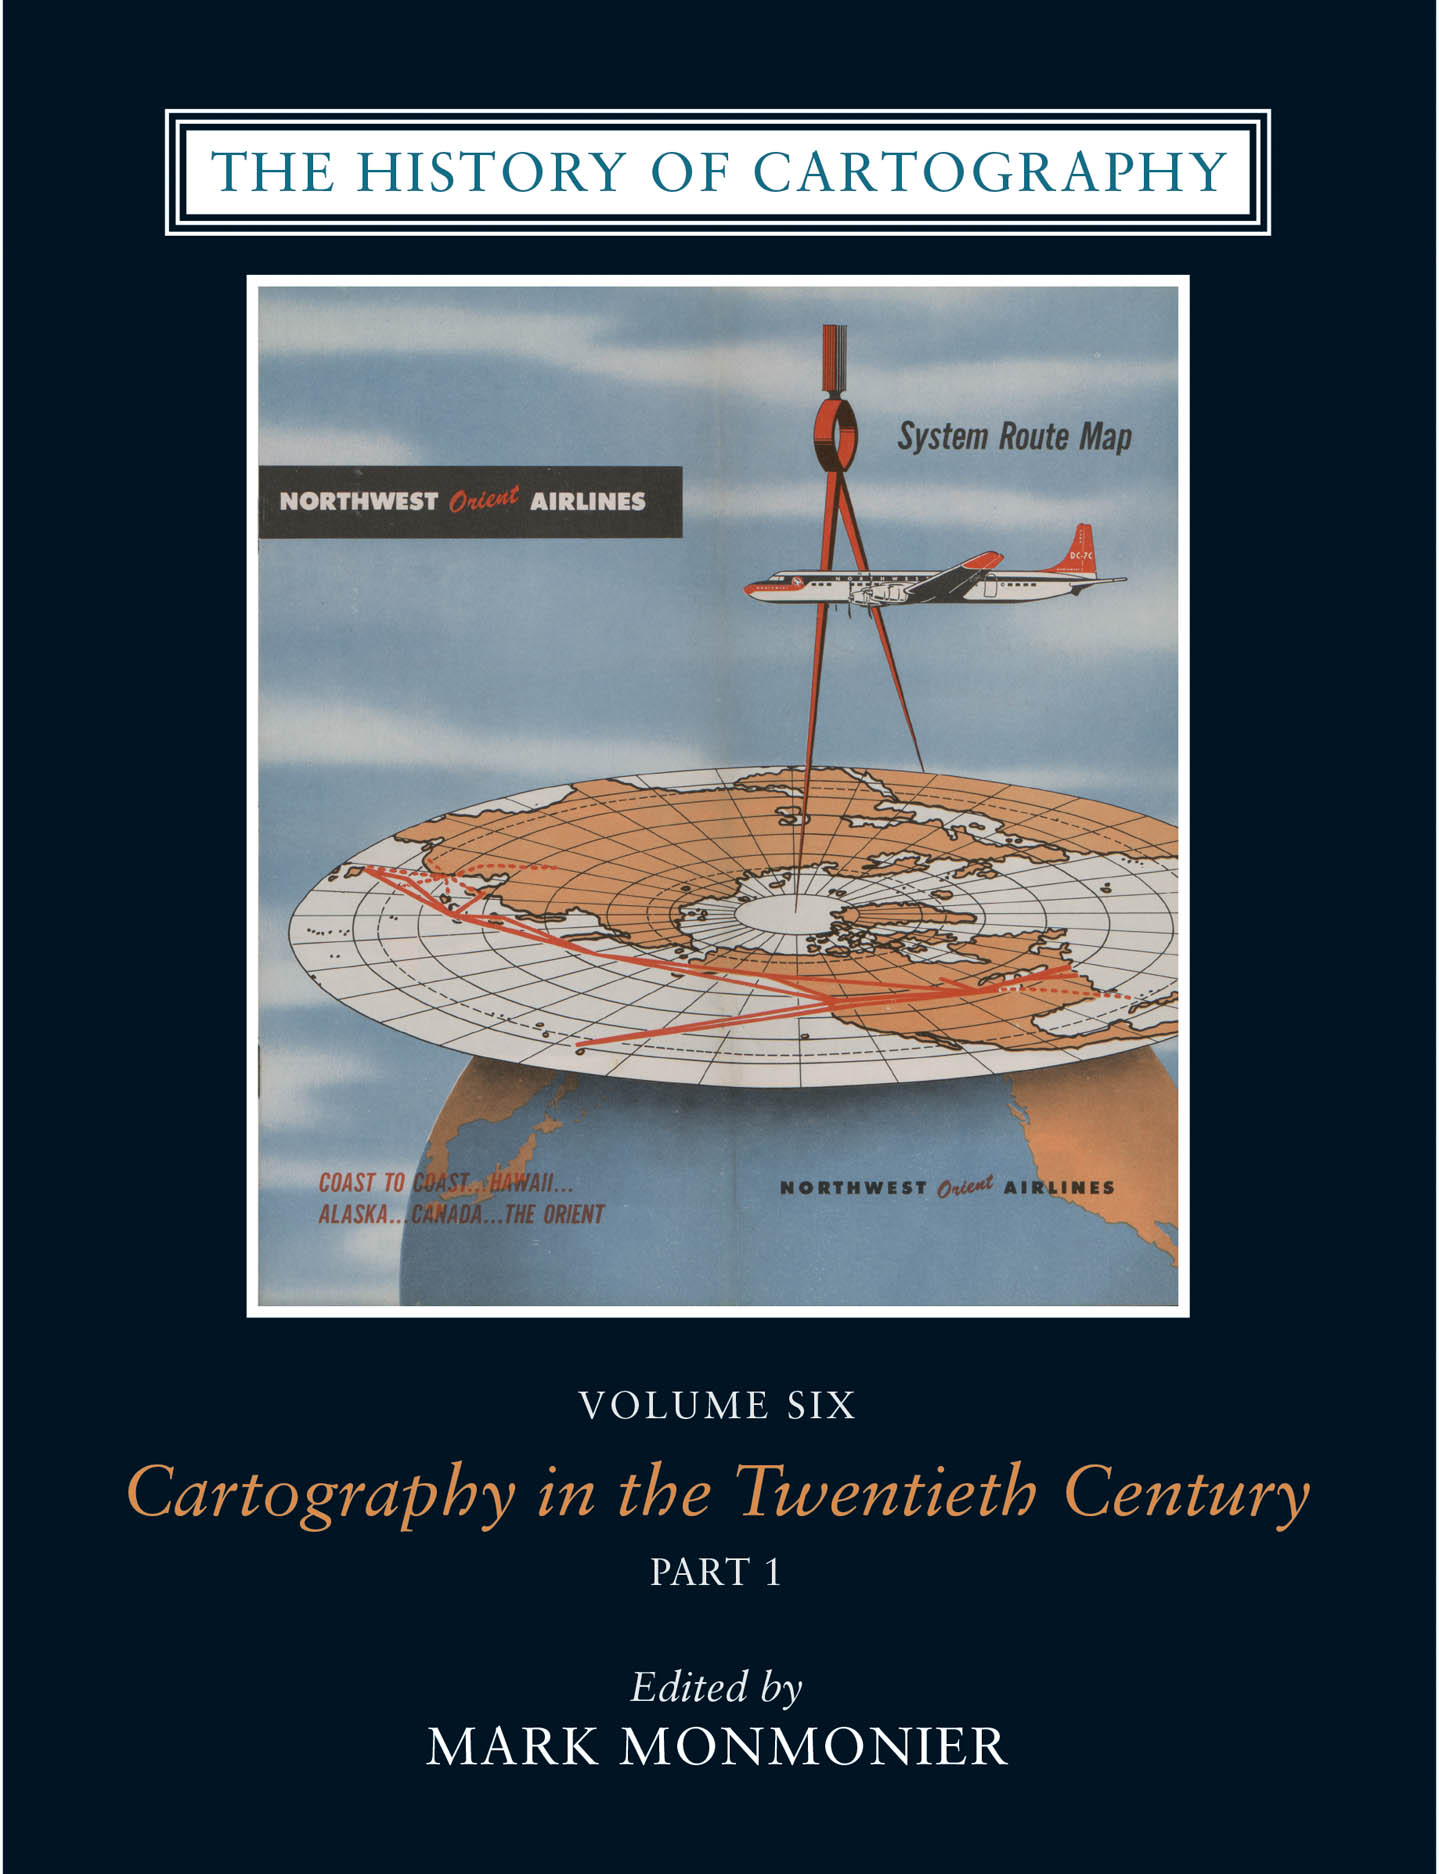 The History of Cartography, Volume 6